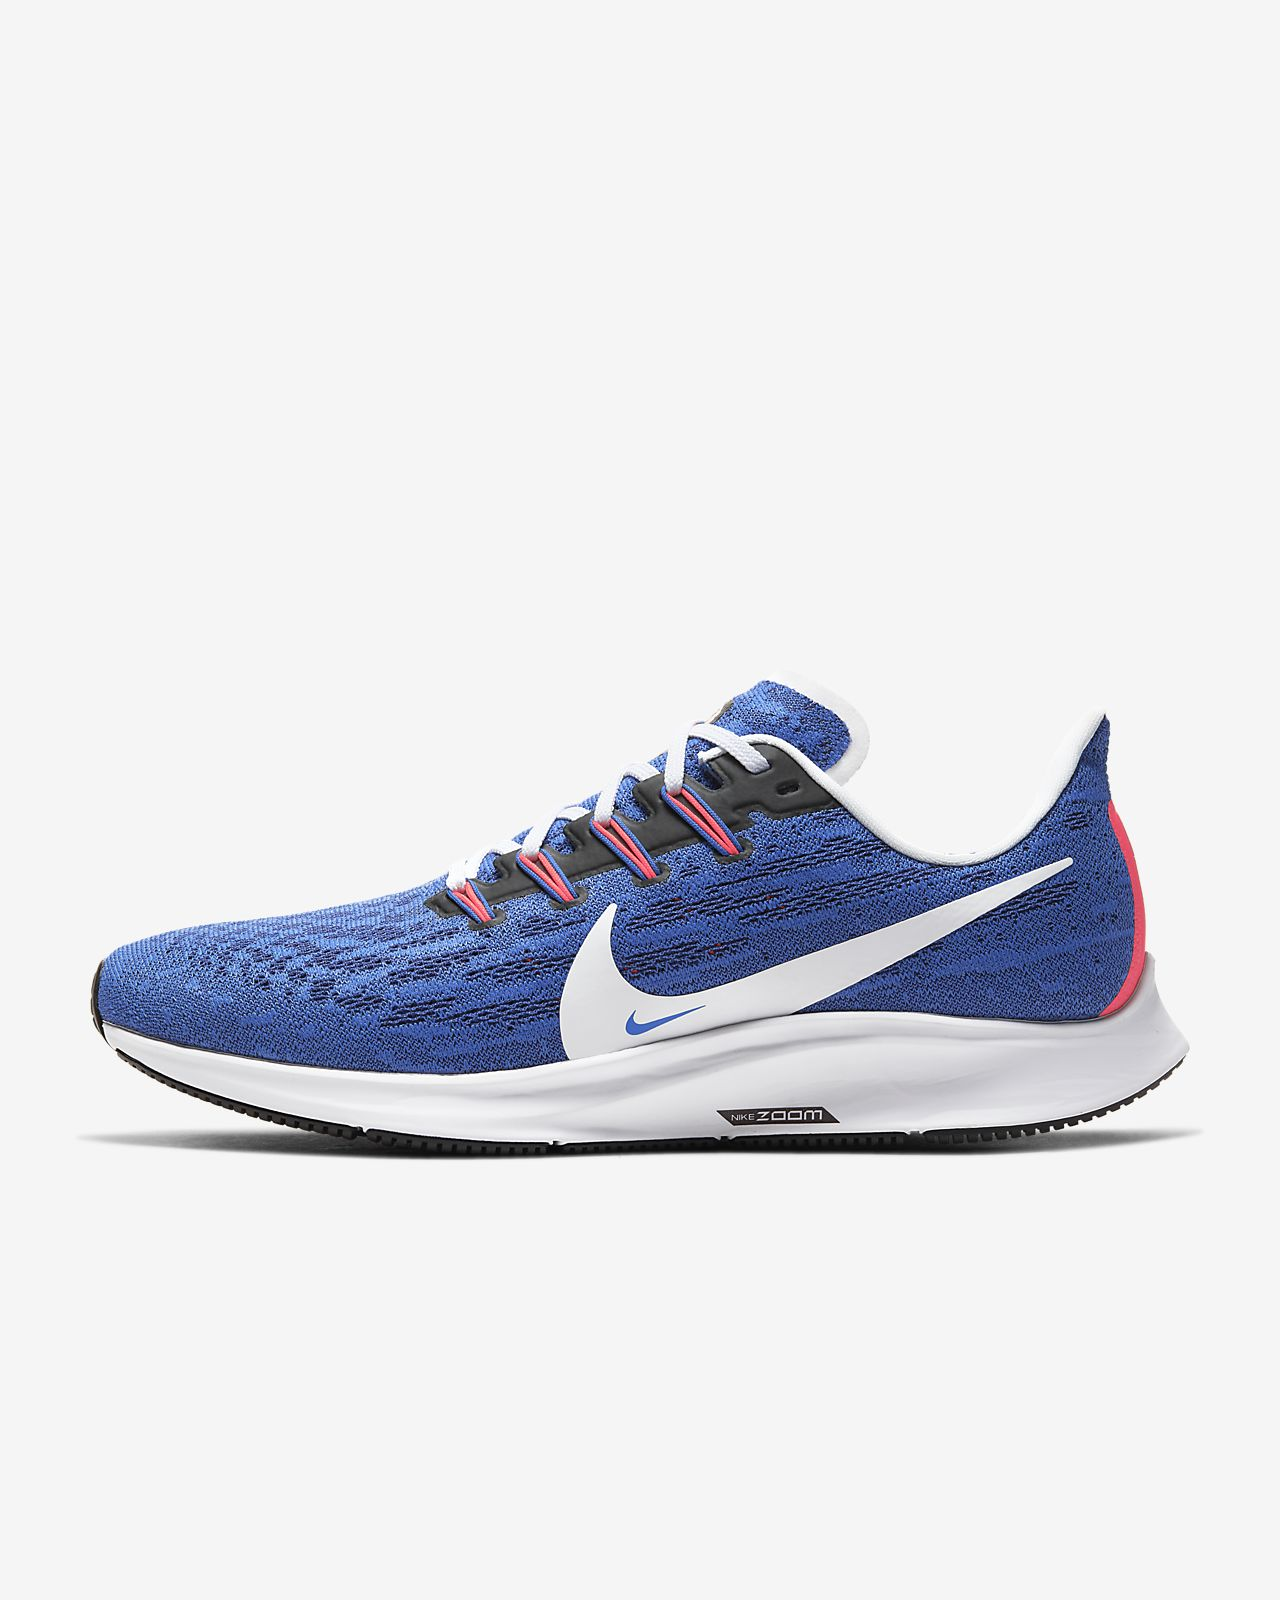 Nike Air Zoom Pegasus 36 Miami Men's Running Shoe